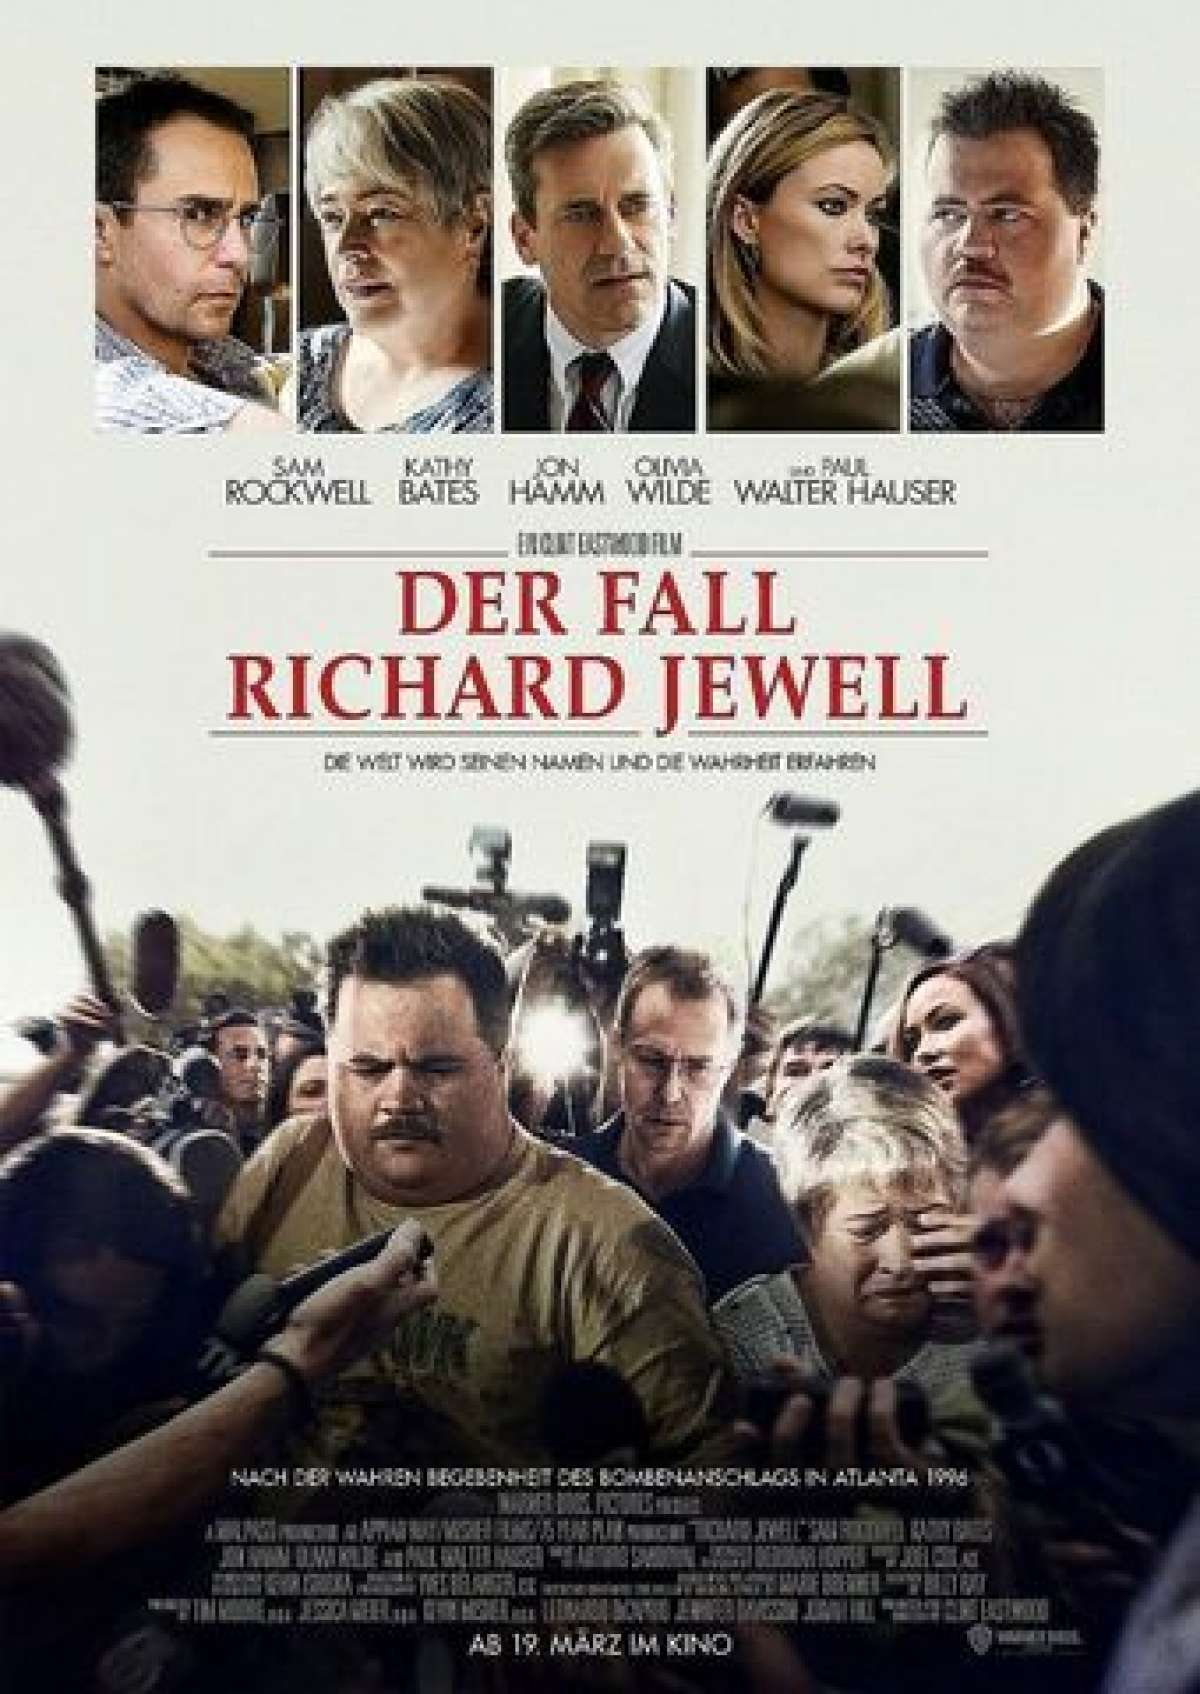 Der Fall Richard Jewell - Cineplex  - Baunatal